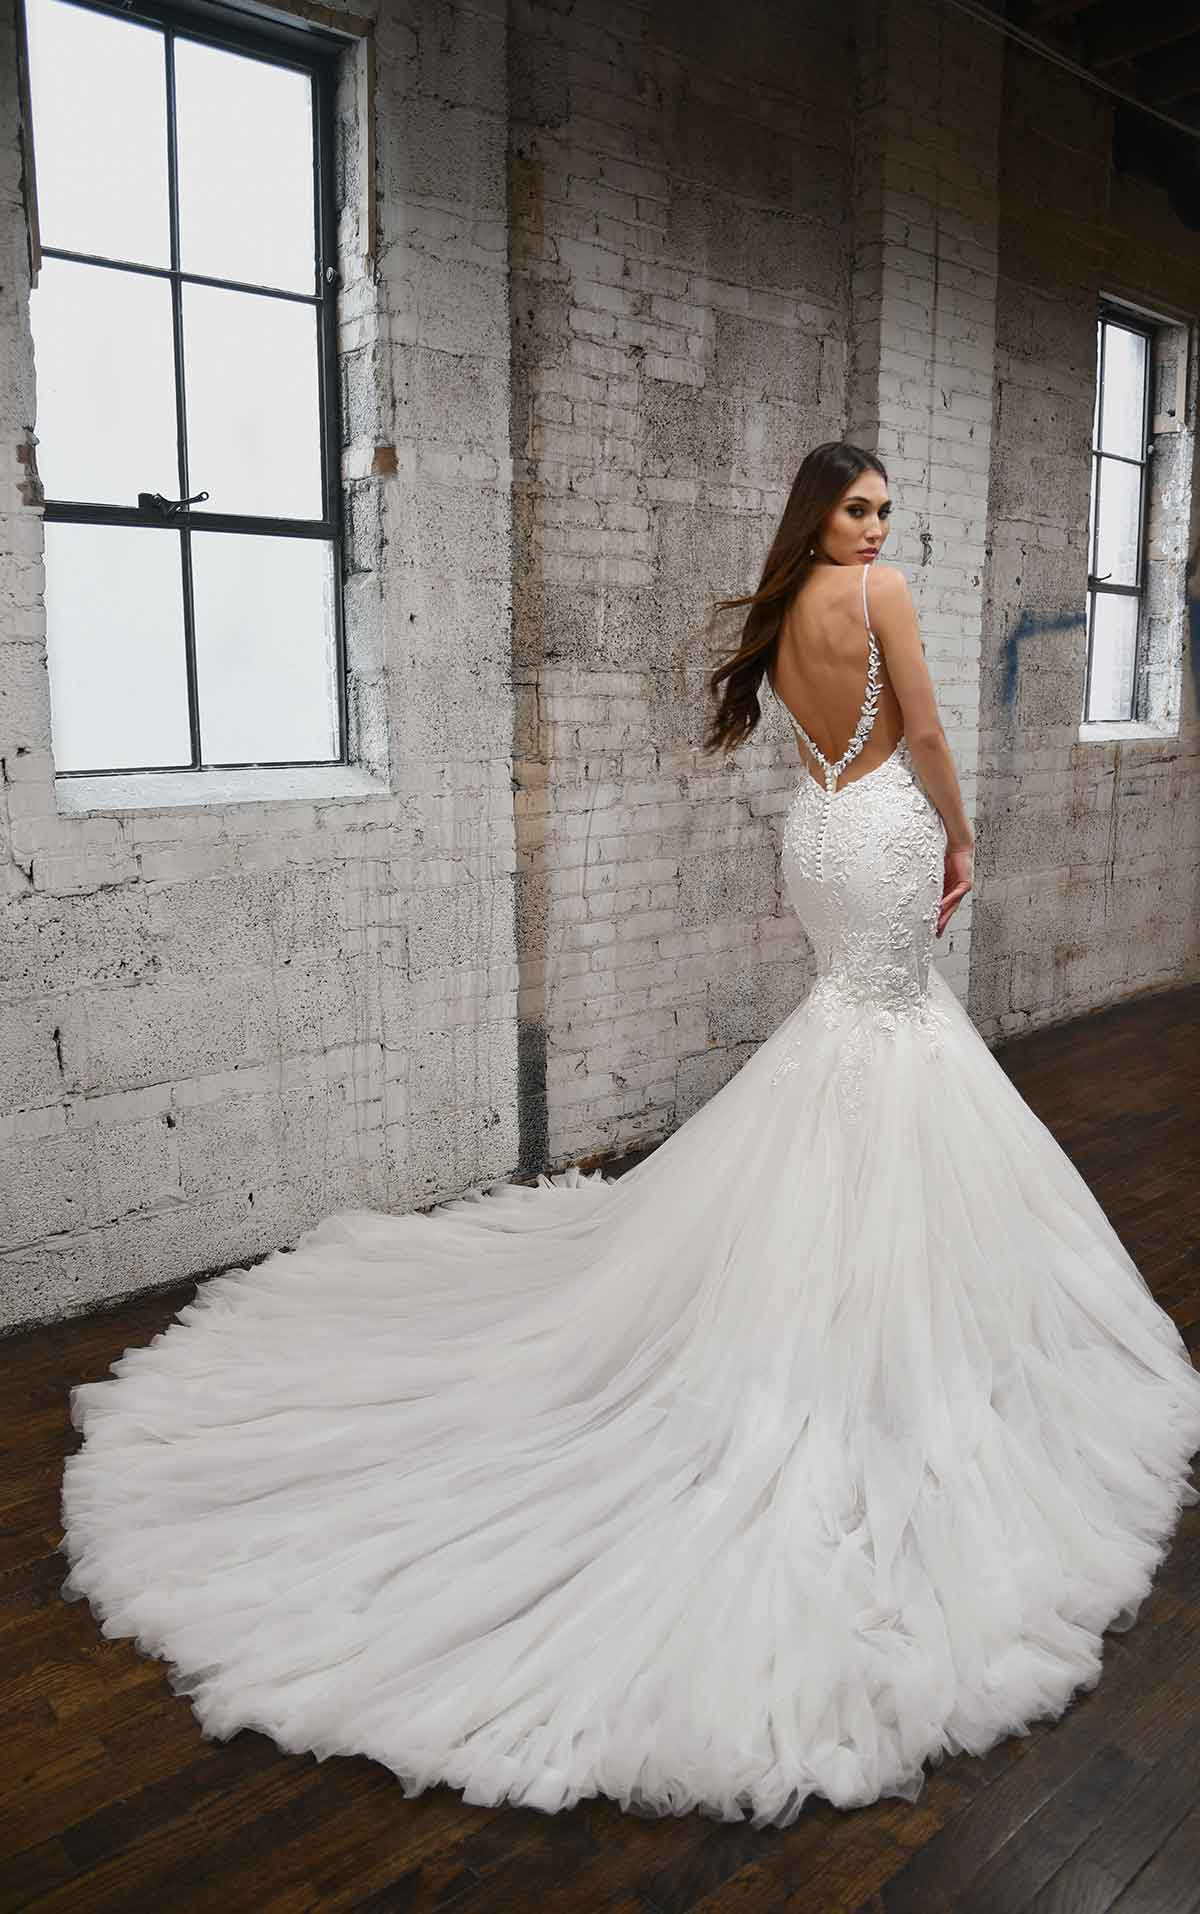 1397 V-Neckline Fit-and-Flare Wedding Dress with Floral Details by Martina Liana